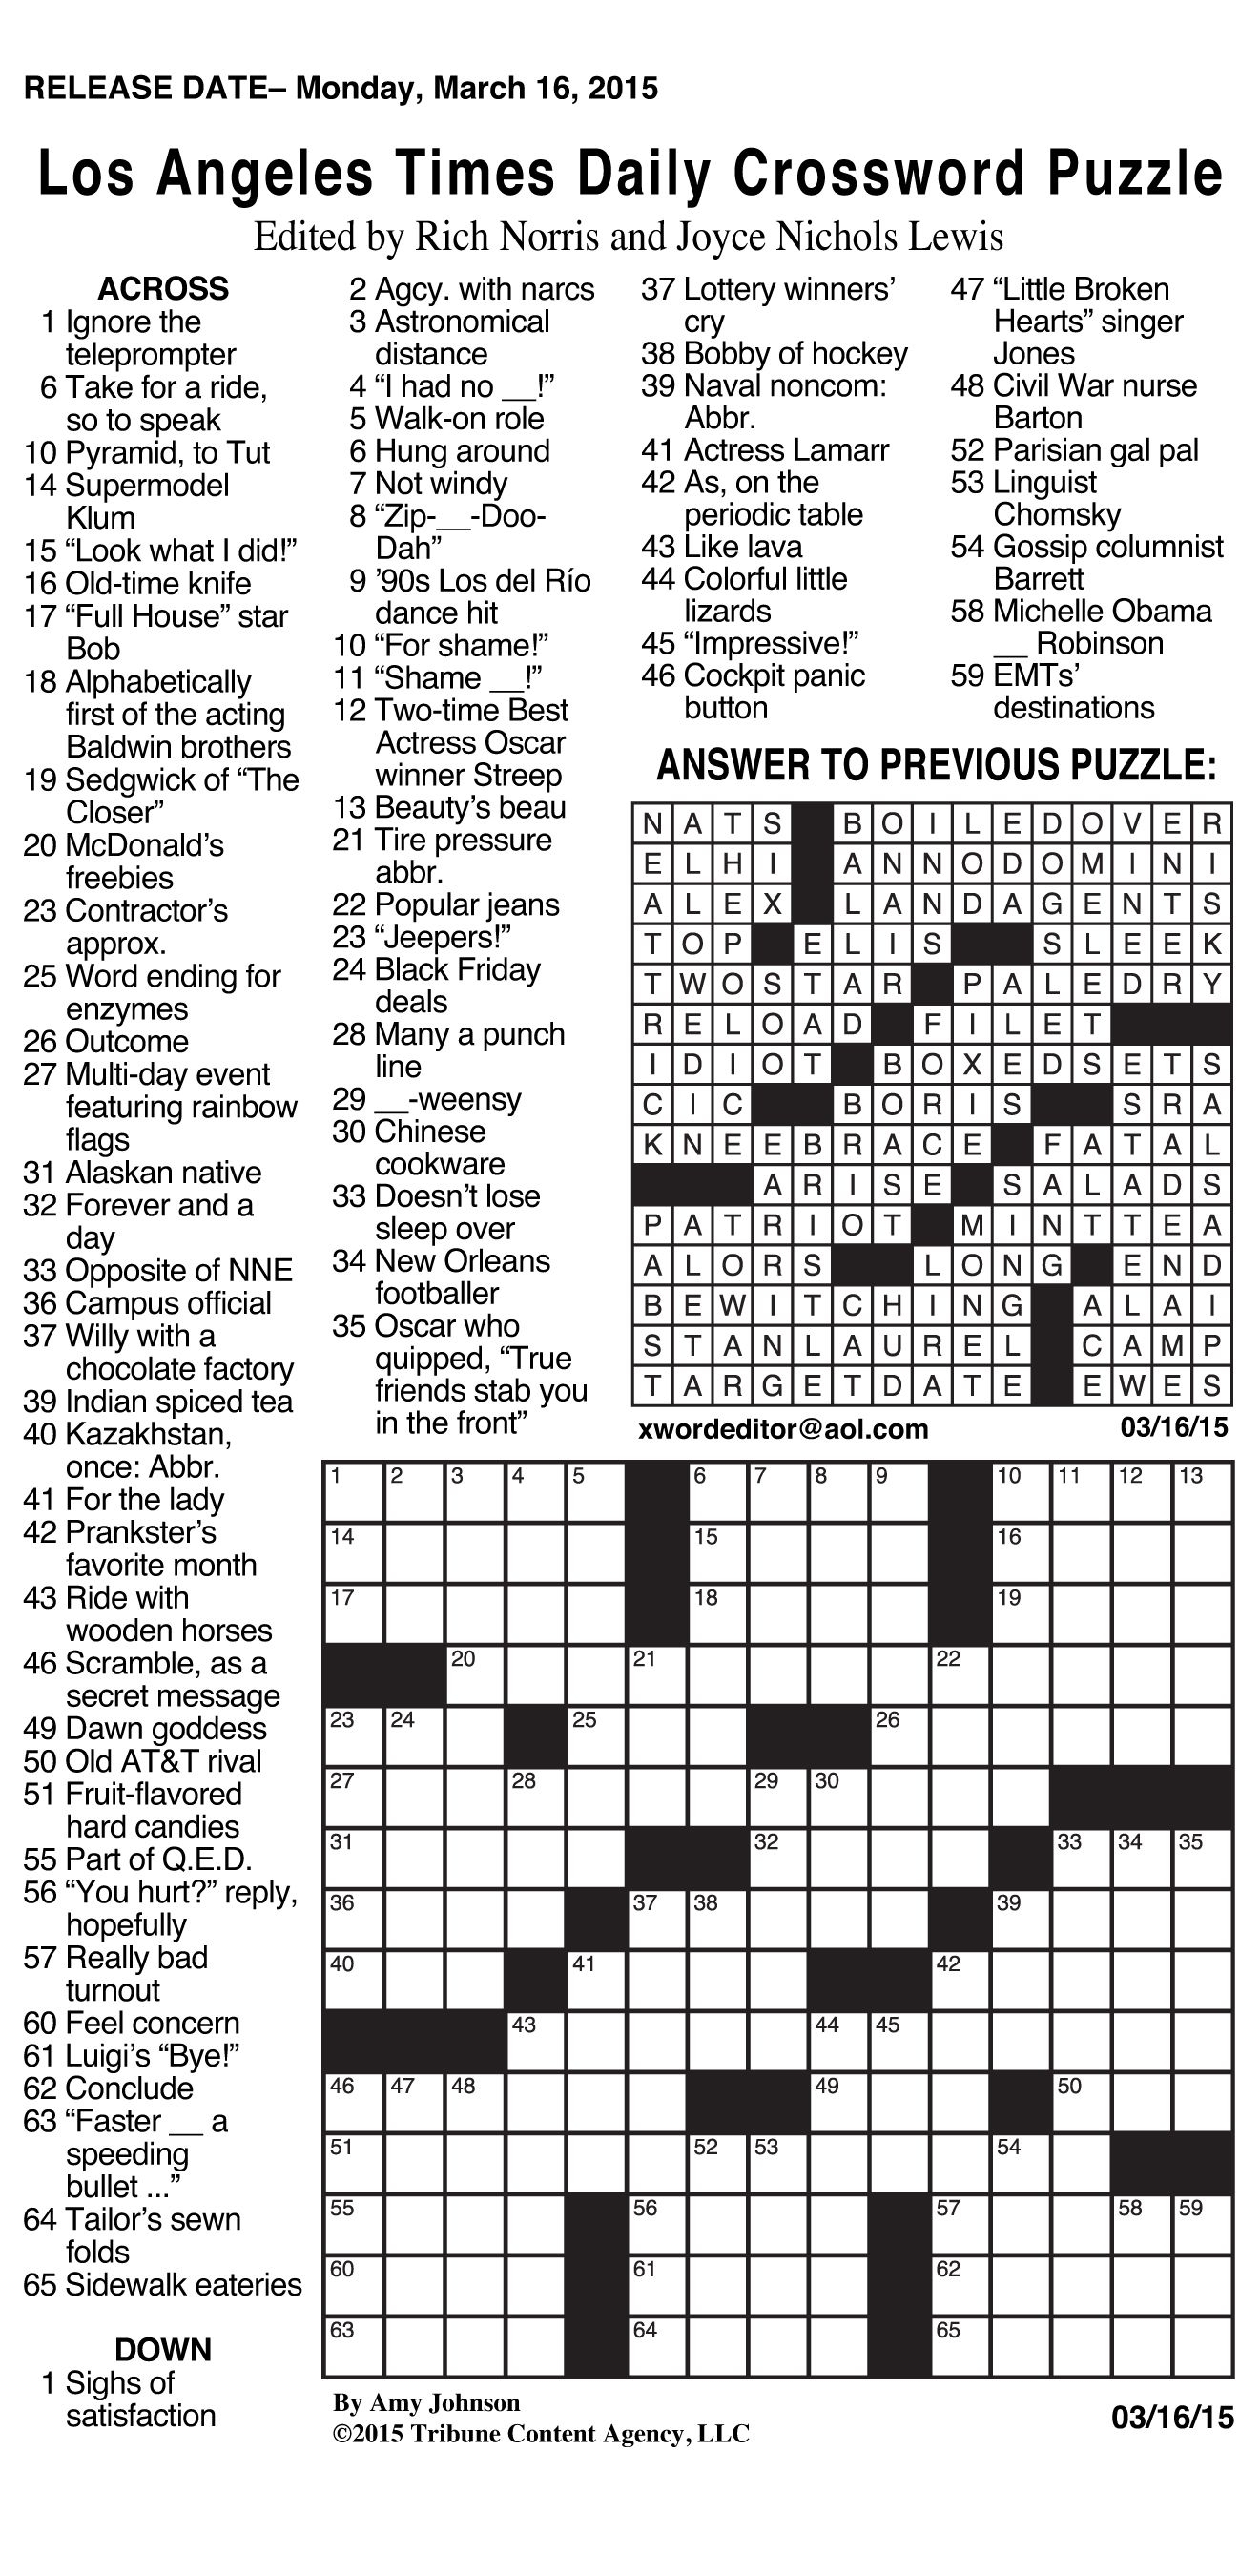 Canonprintermx410: 26 Fresh Free La Times Crossword - La Times Printable Crossword Puzzles 2018